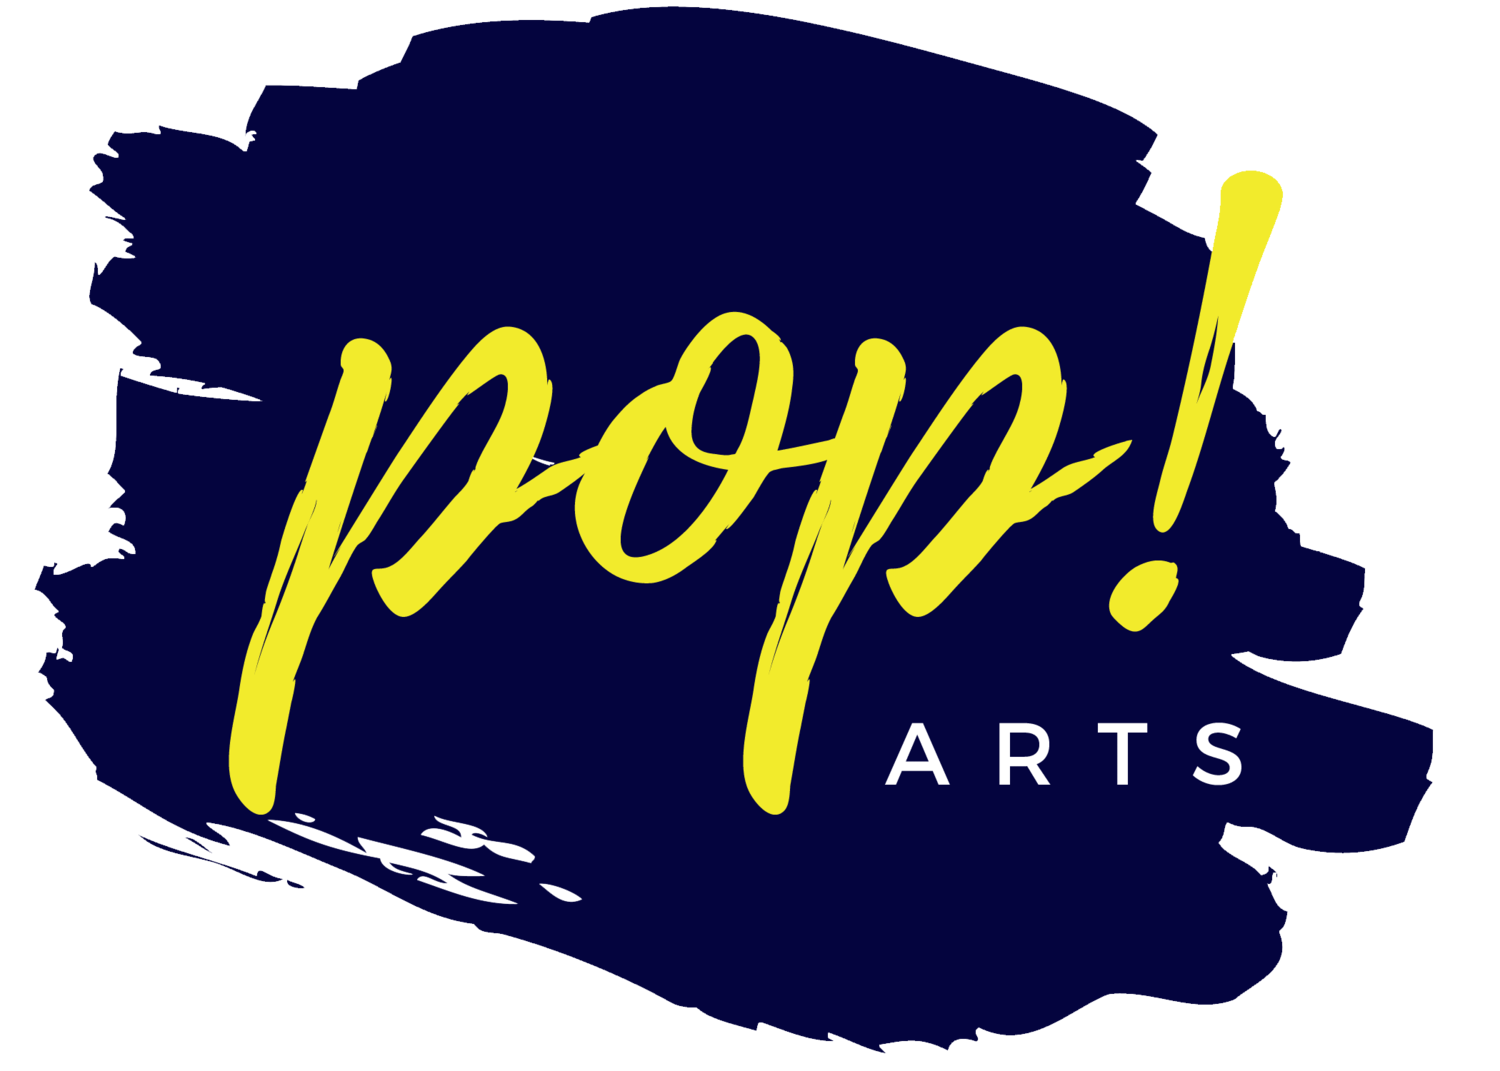 Pop! Arts Kids | Classes & Camps